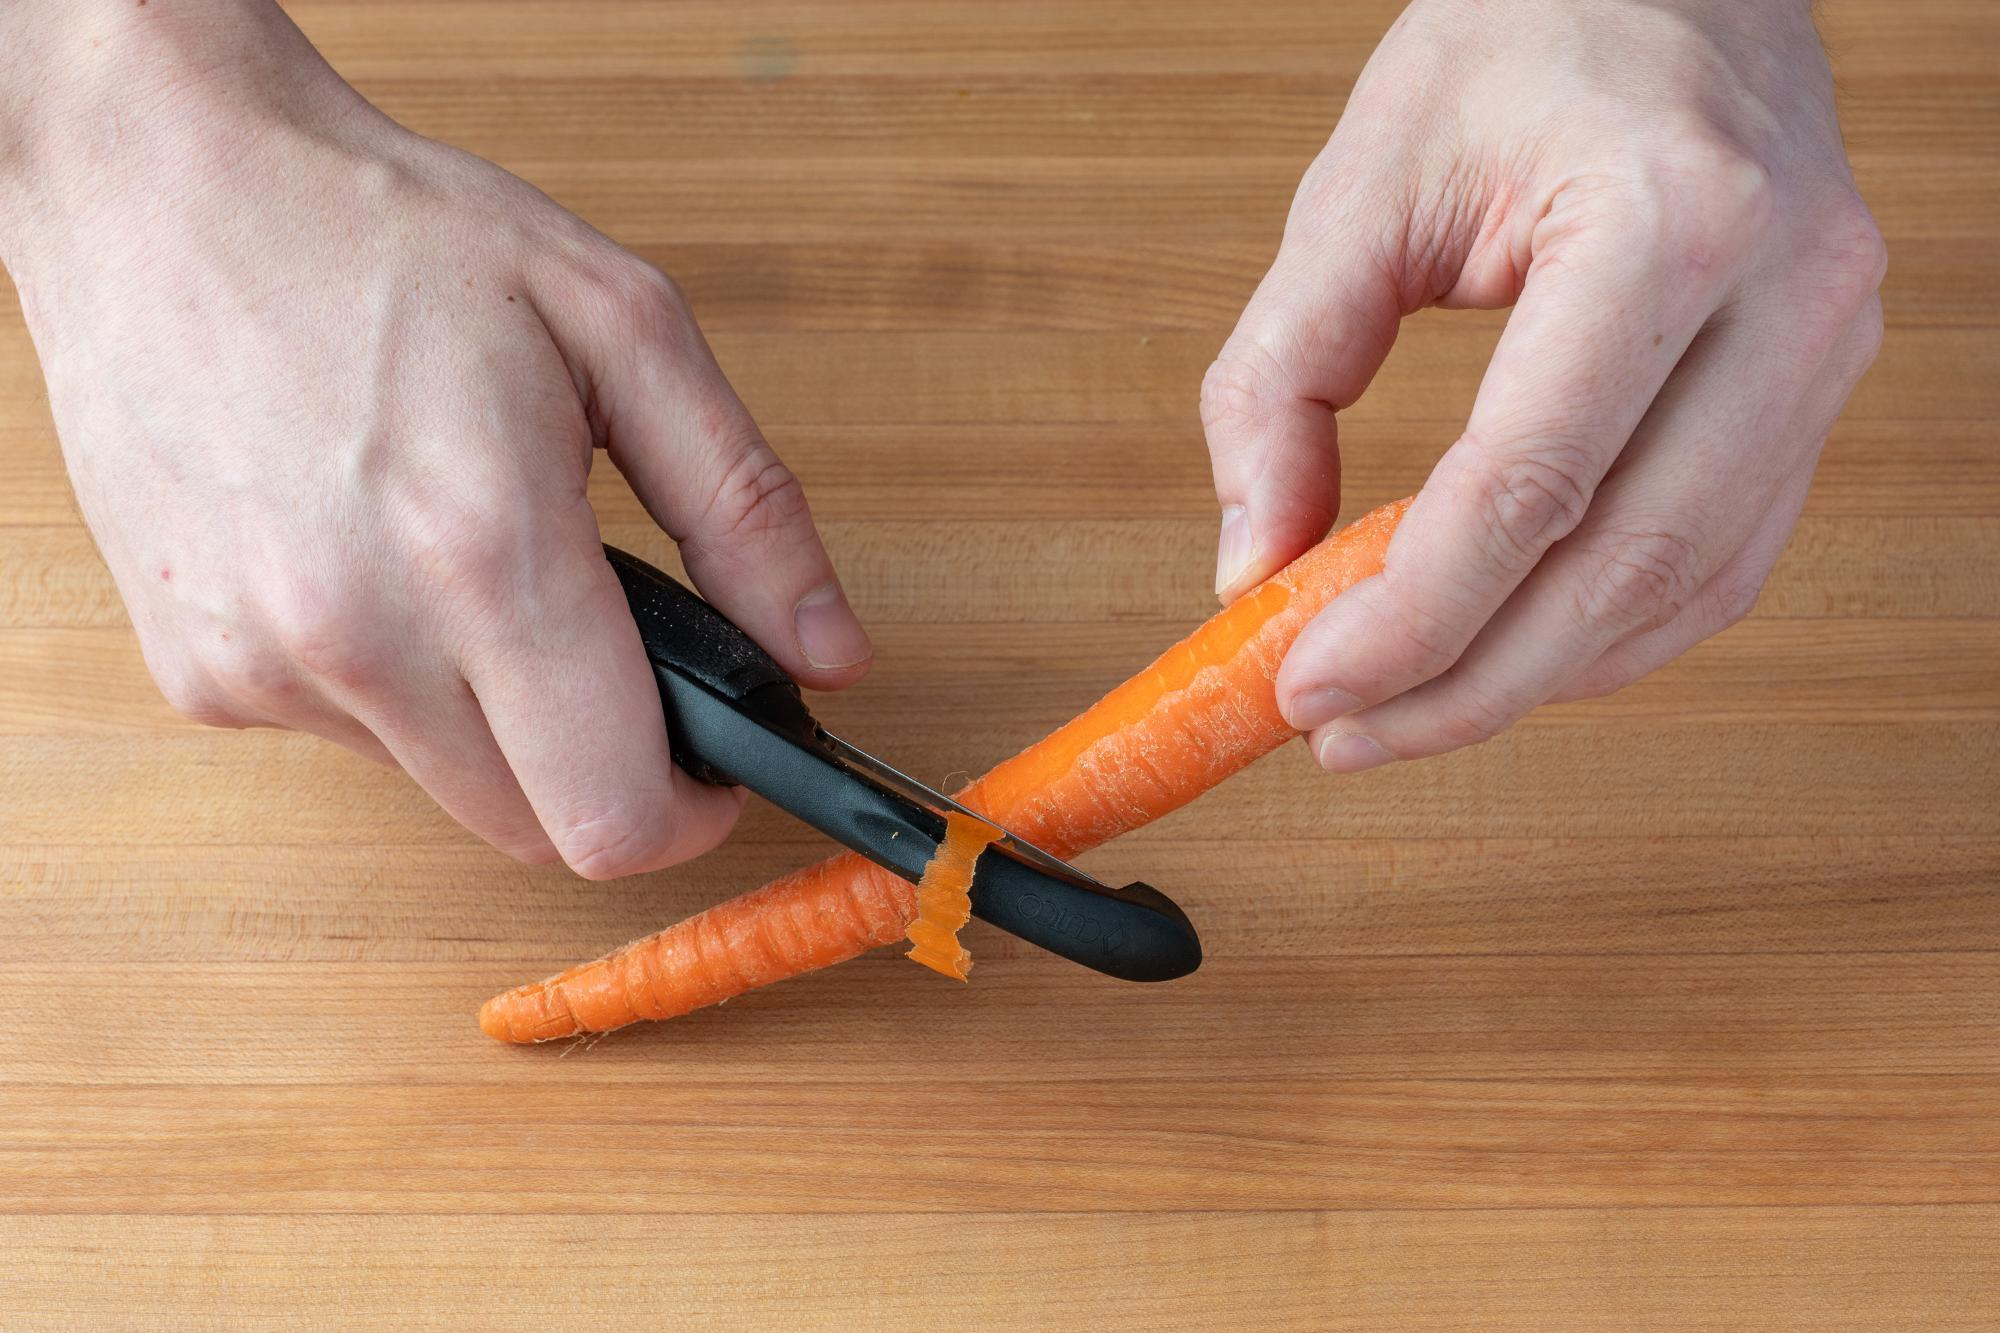 Peeling the carrot with a Vegetable Peeler.